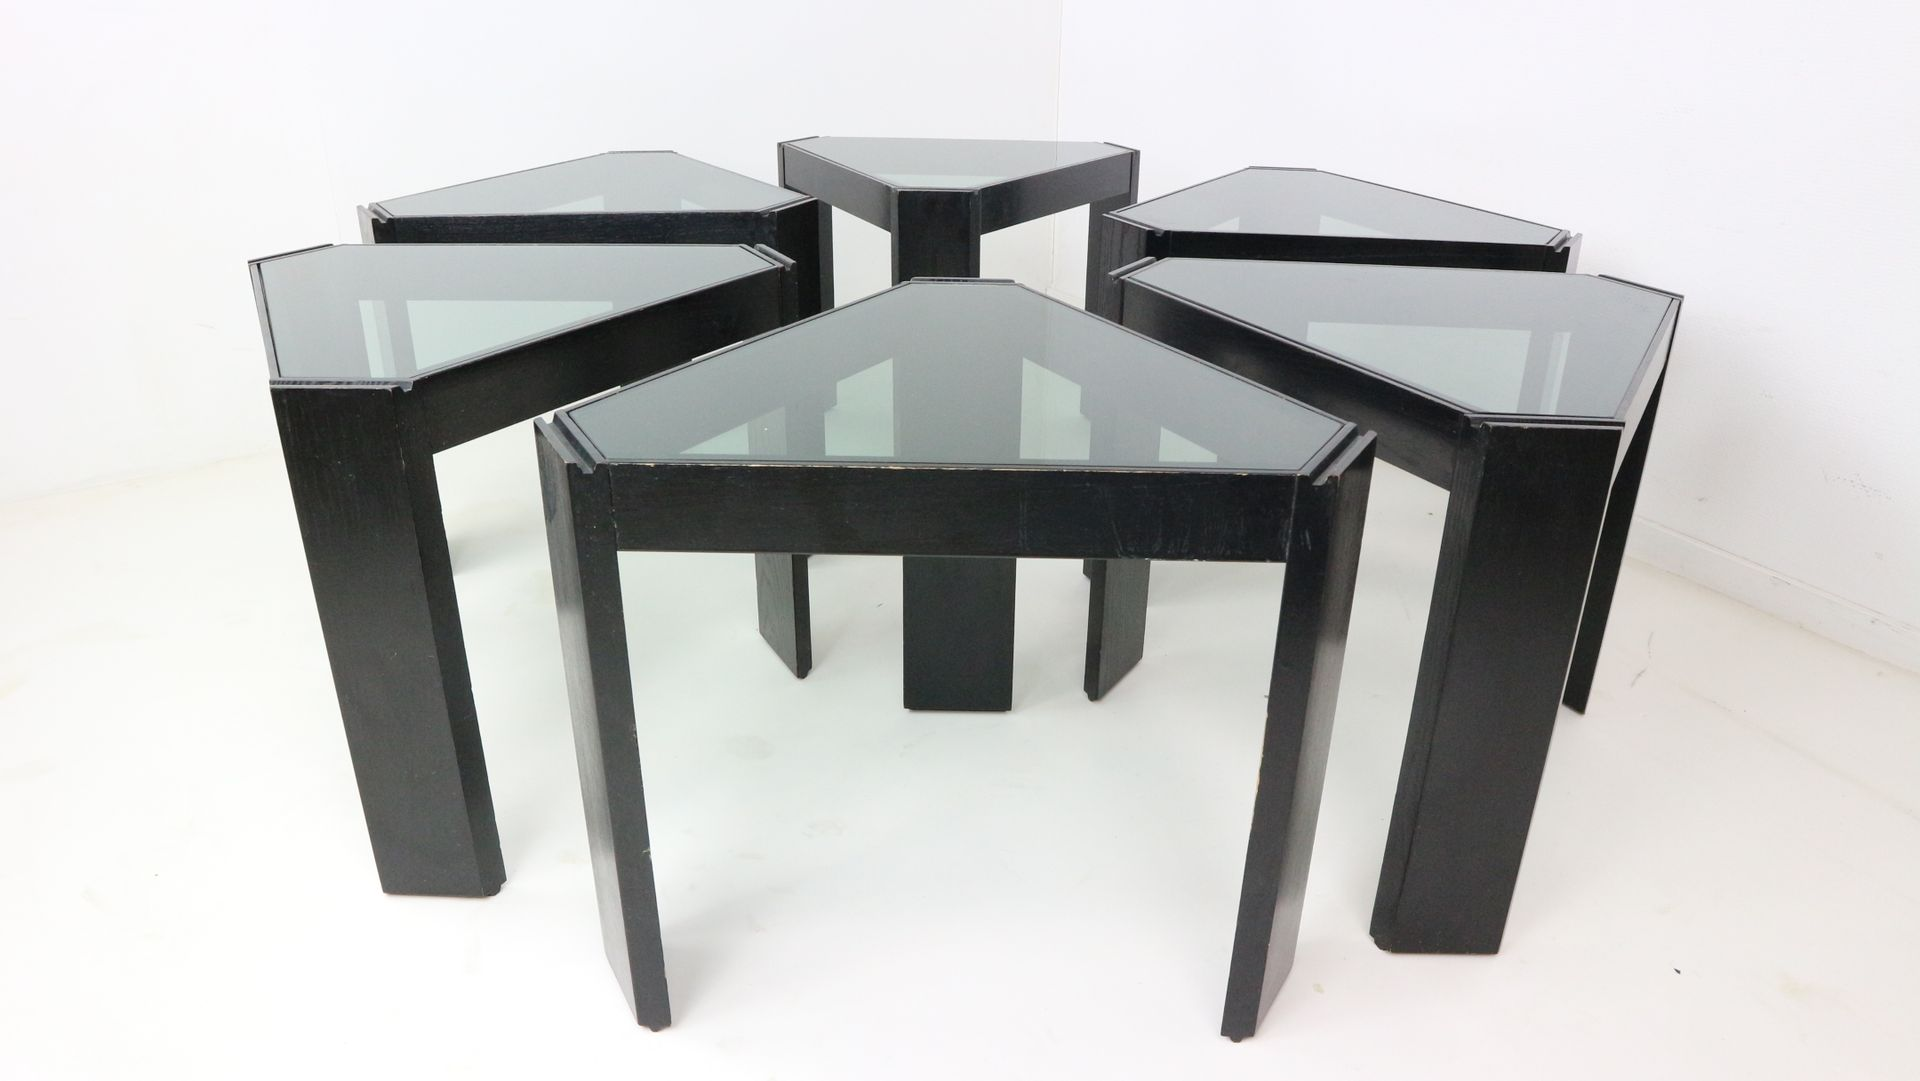 geometric stackable nesting tables by porada arredi s. geometric stackable nesting tables by porada arredi s for